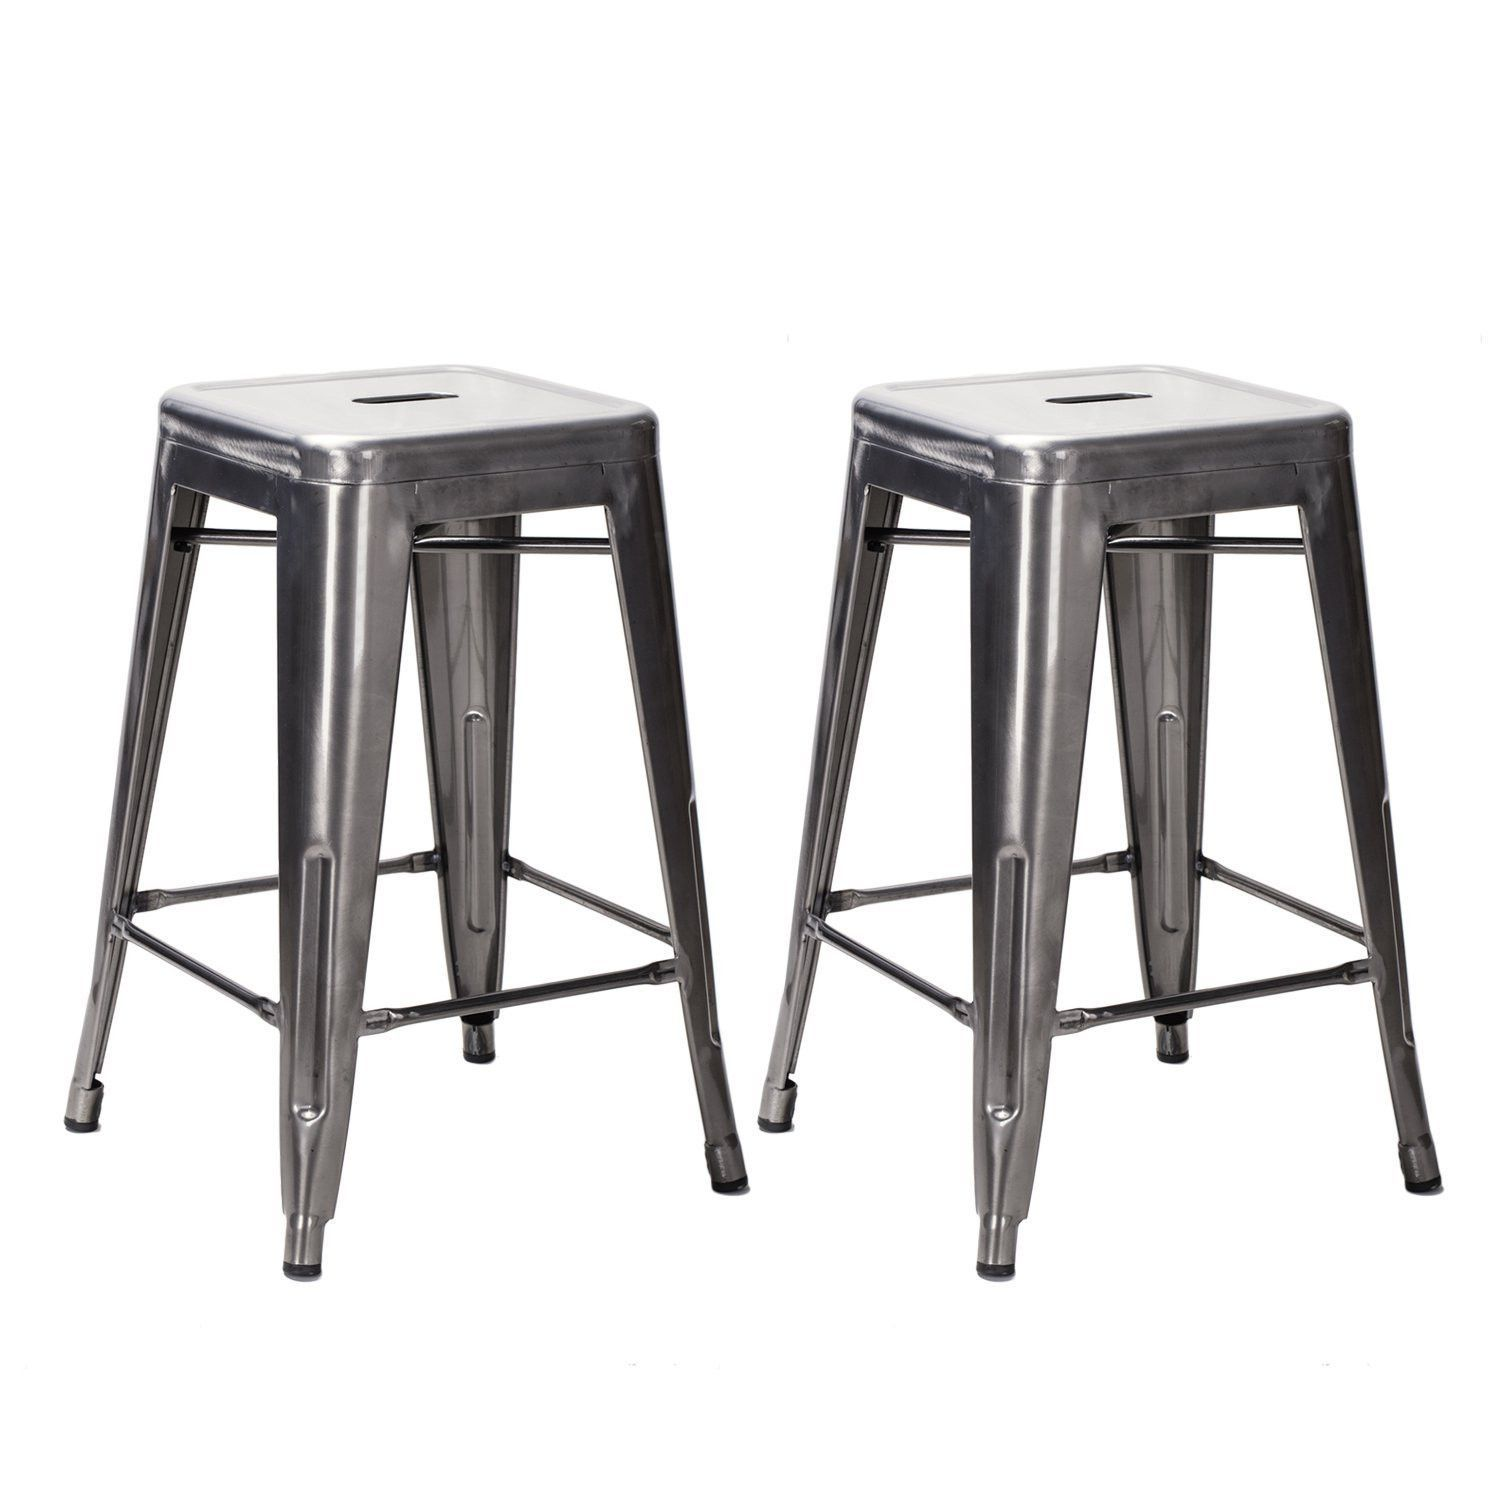 24-inch Gunmetal / Silver Glossy Metal Tolix-style Chair Counter Stool (Set of 2)